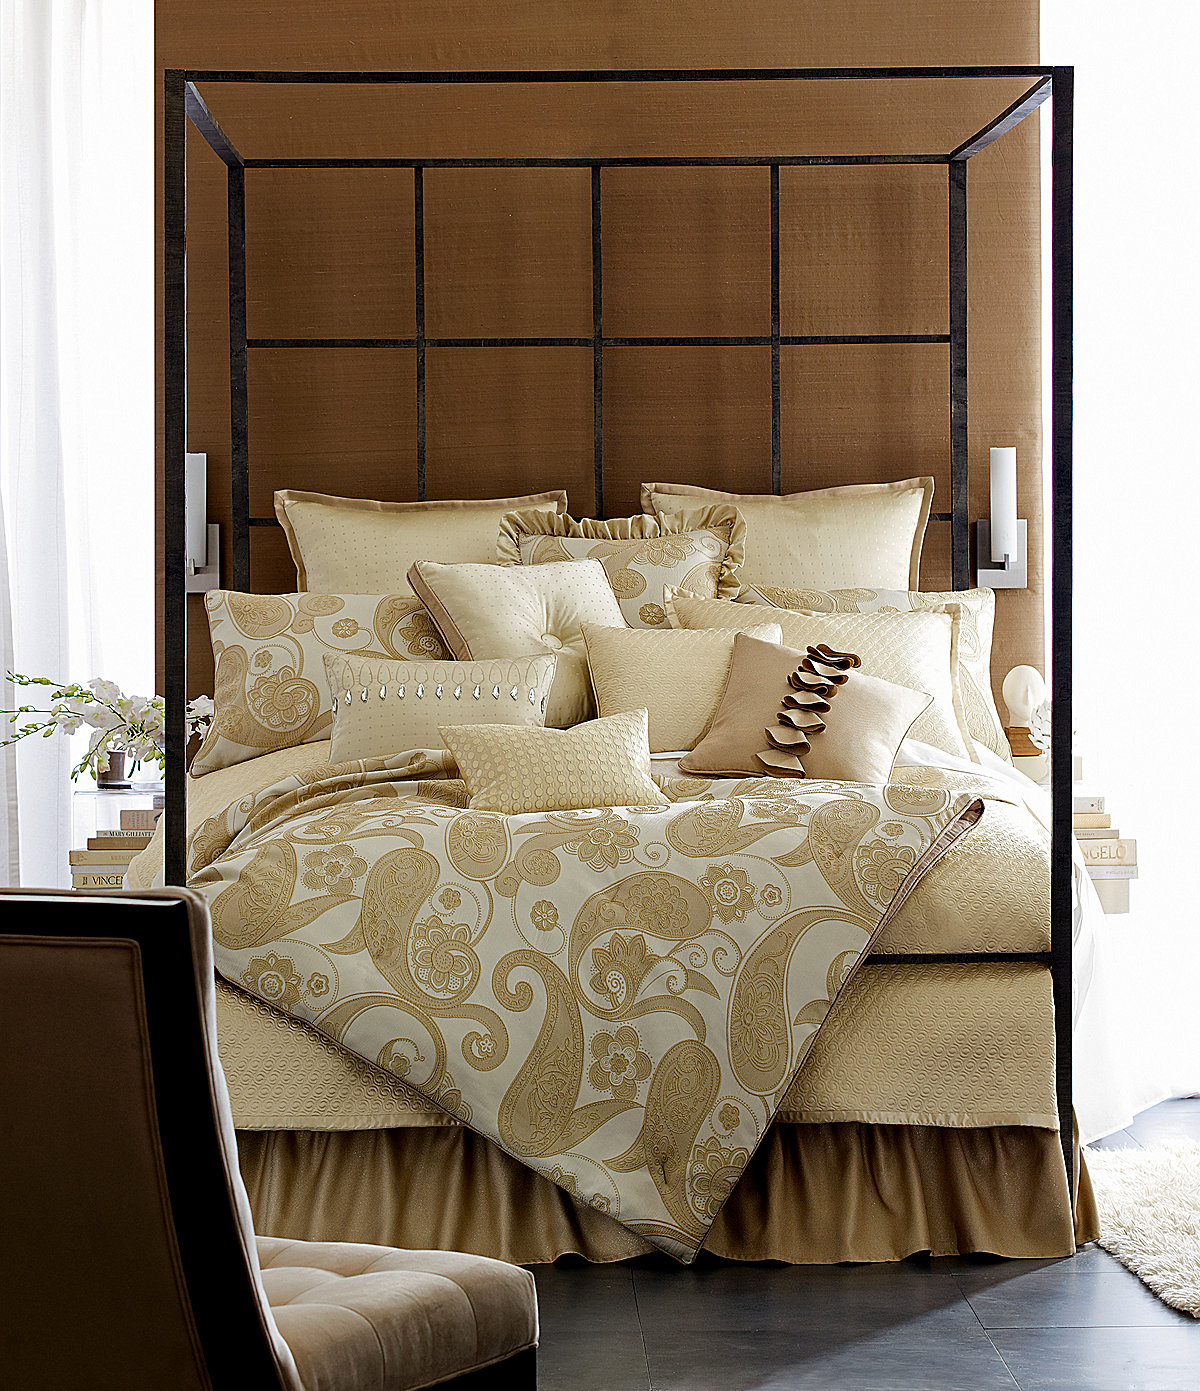 Modern Furniture 2013 Candice Olson Bedding Collection